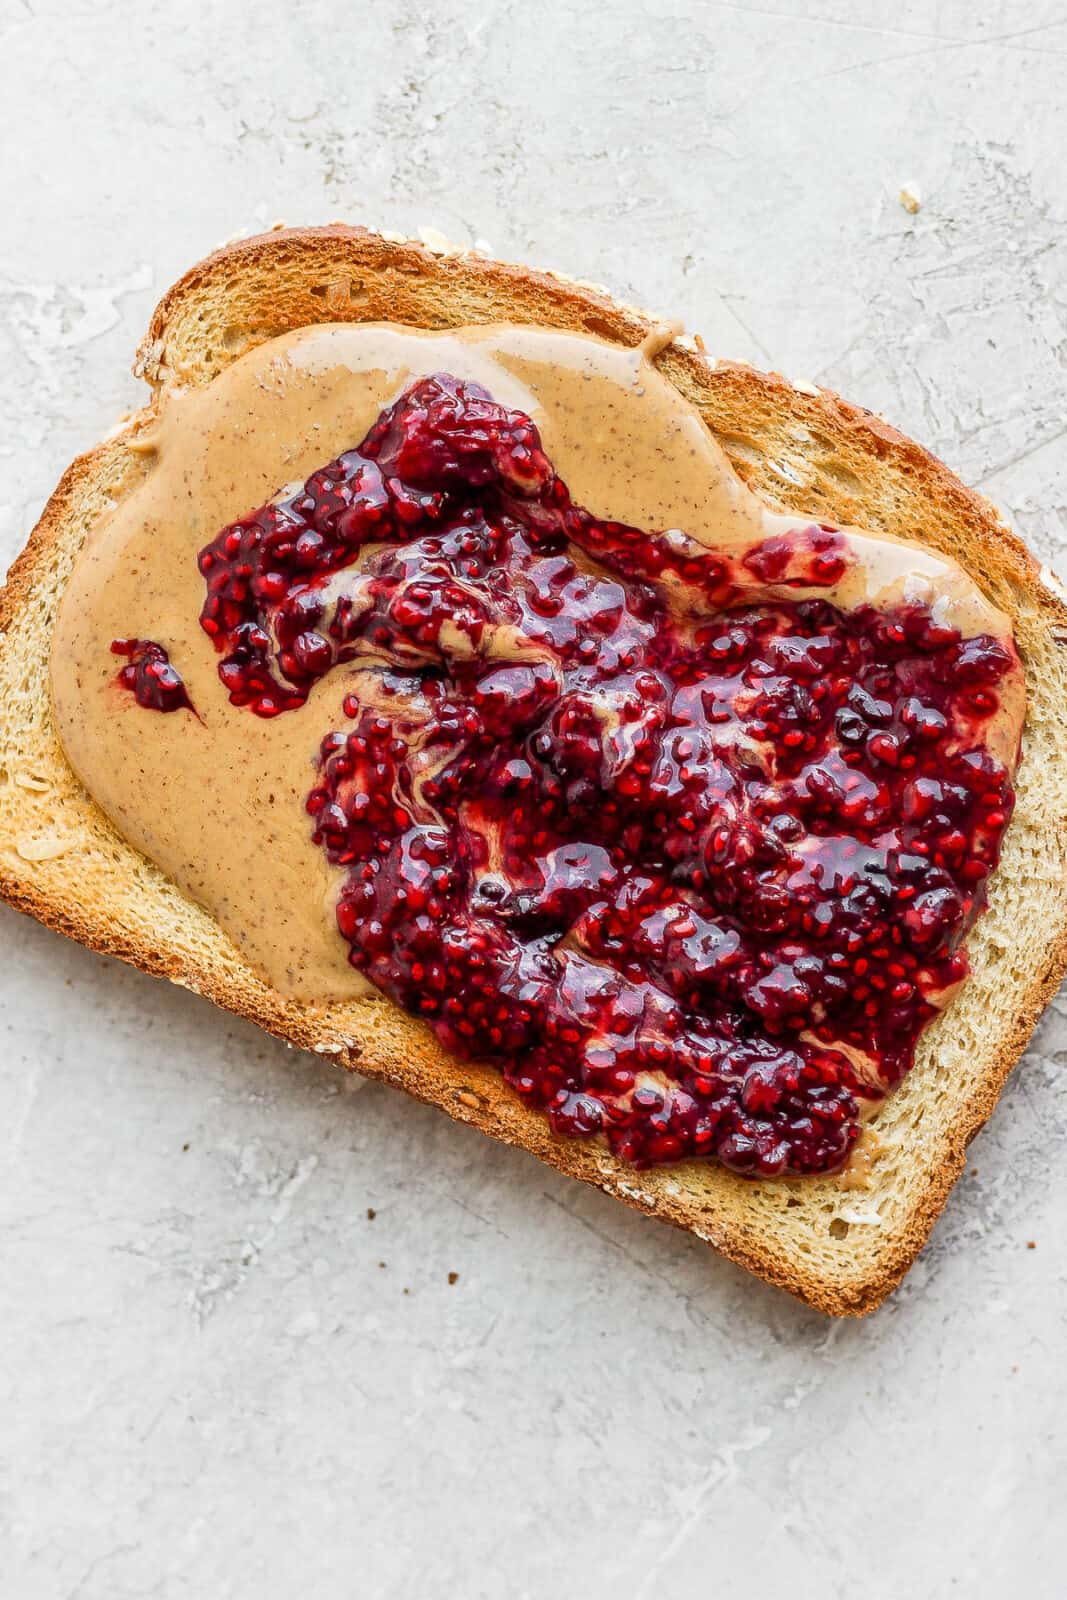 A piece of toast with almond butter and homemade chia sed jam spread on it.